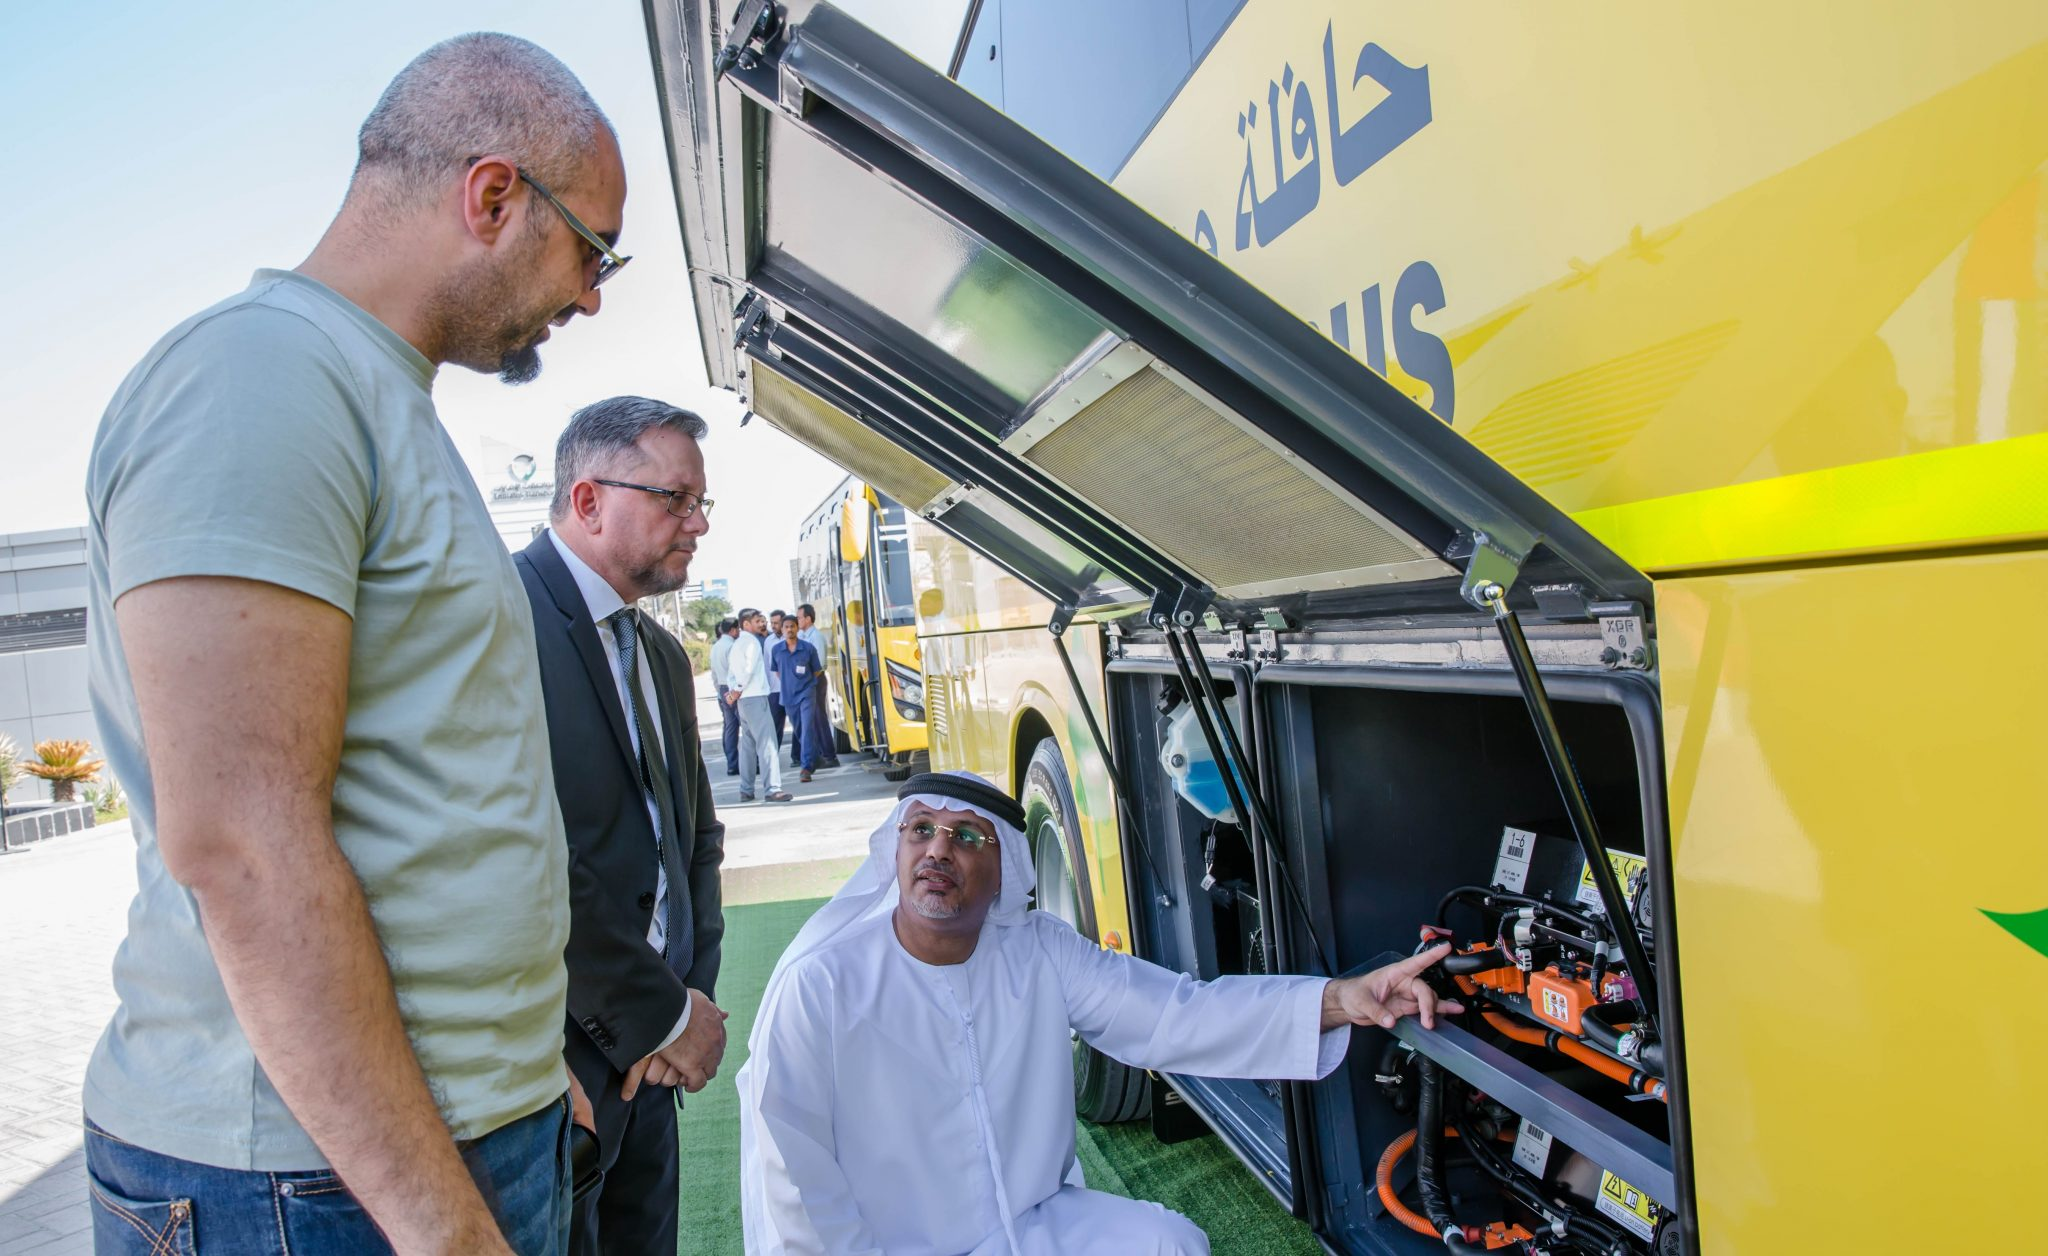 Emirates Transport tests an electric school bus from the Shanghai Sunwin Bus Cooperation. Chinese companies lead the way in bus electrification. Pic: Emirates Transport.